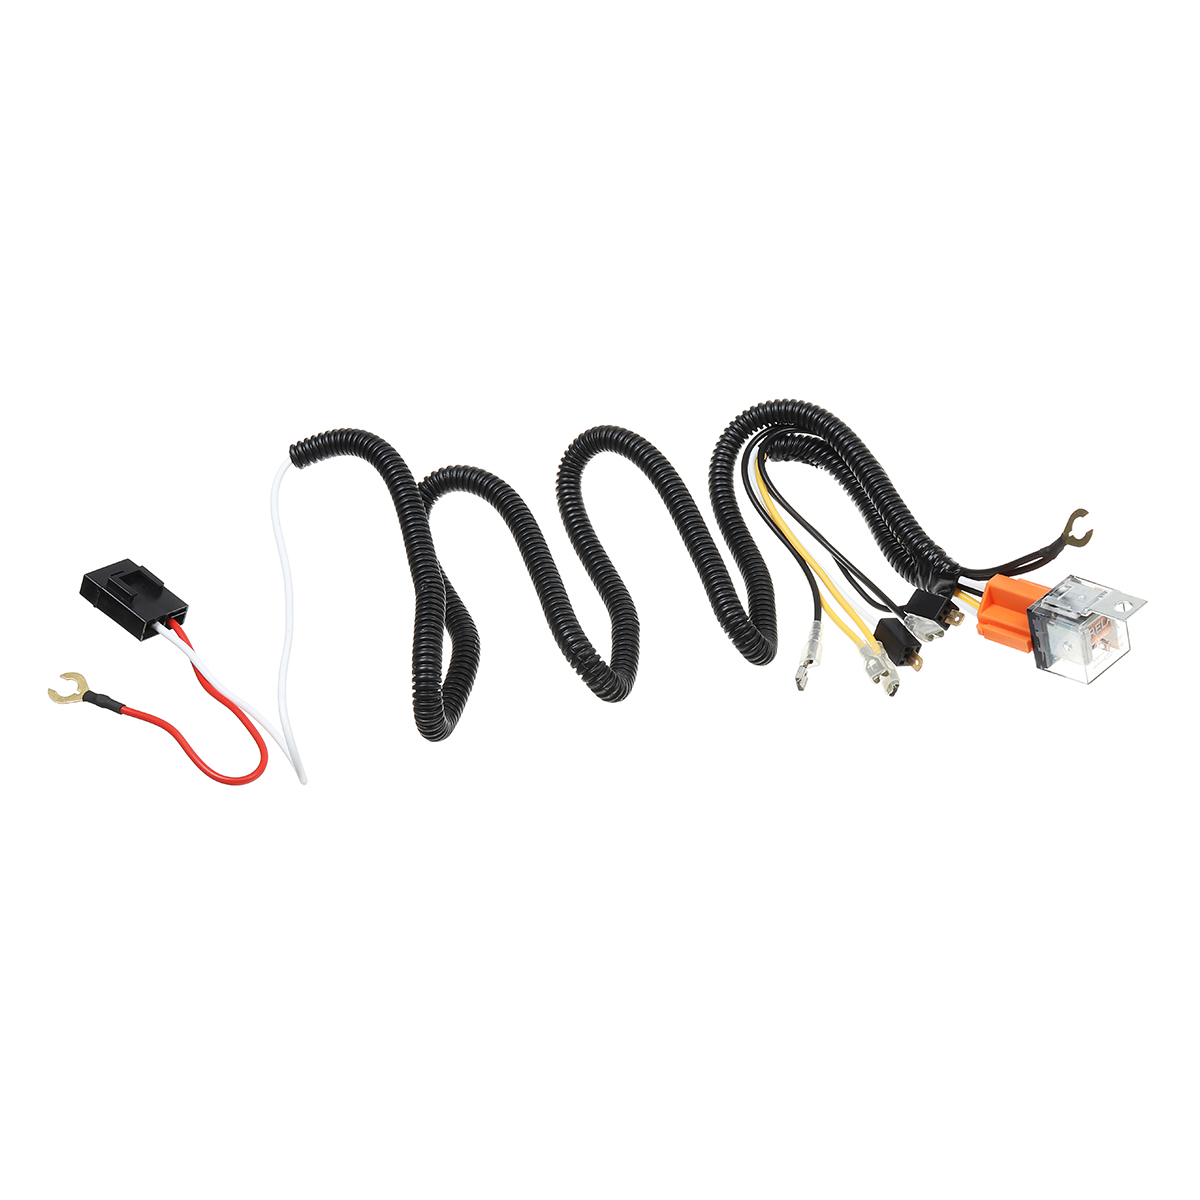 New 12v 40a Horn Wiring Harness Relay Kit For Car Truck